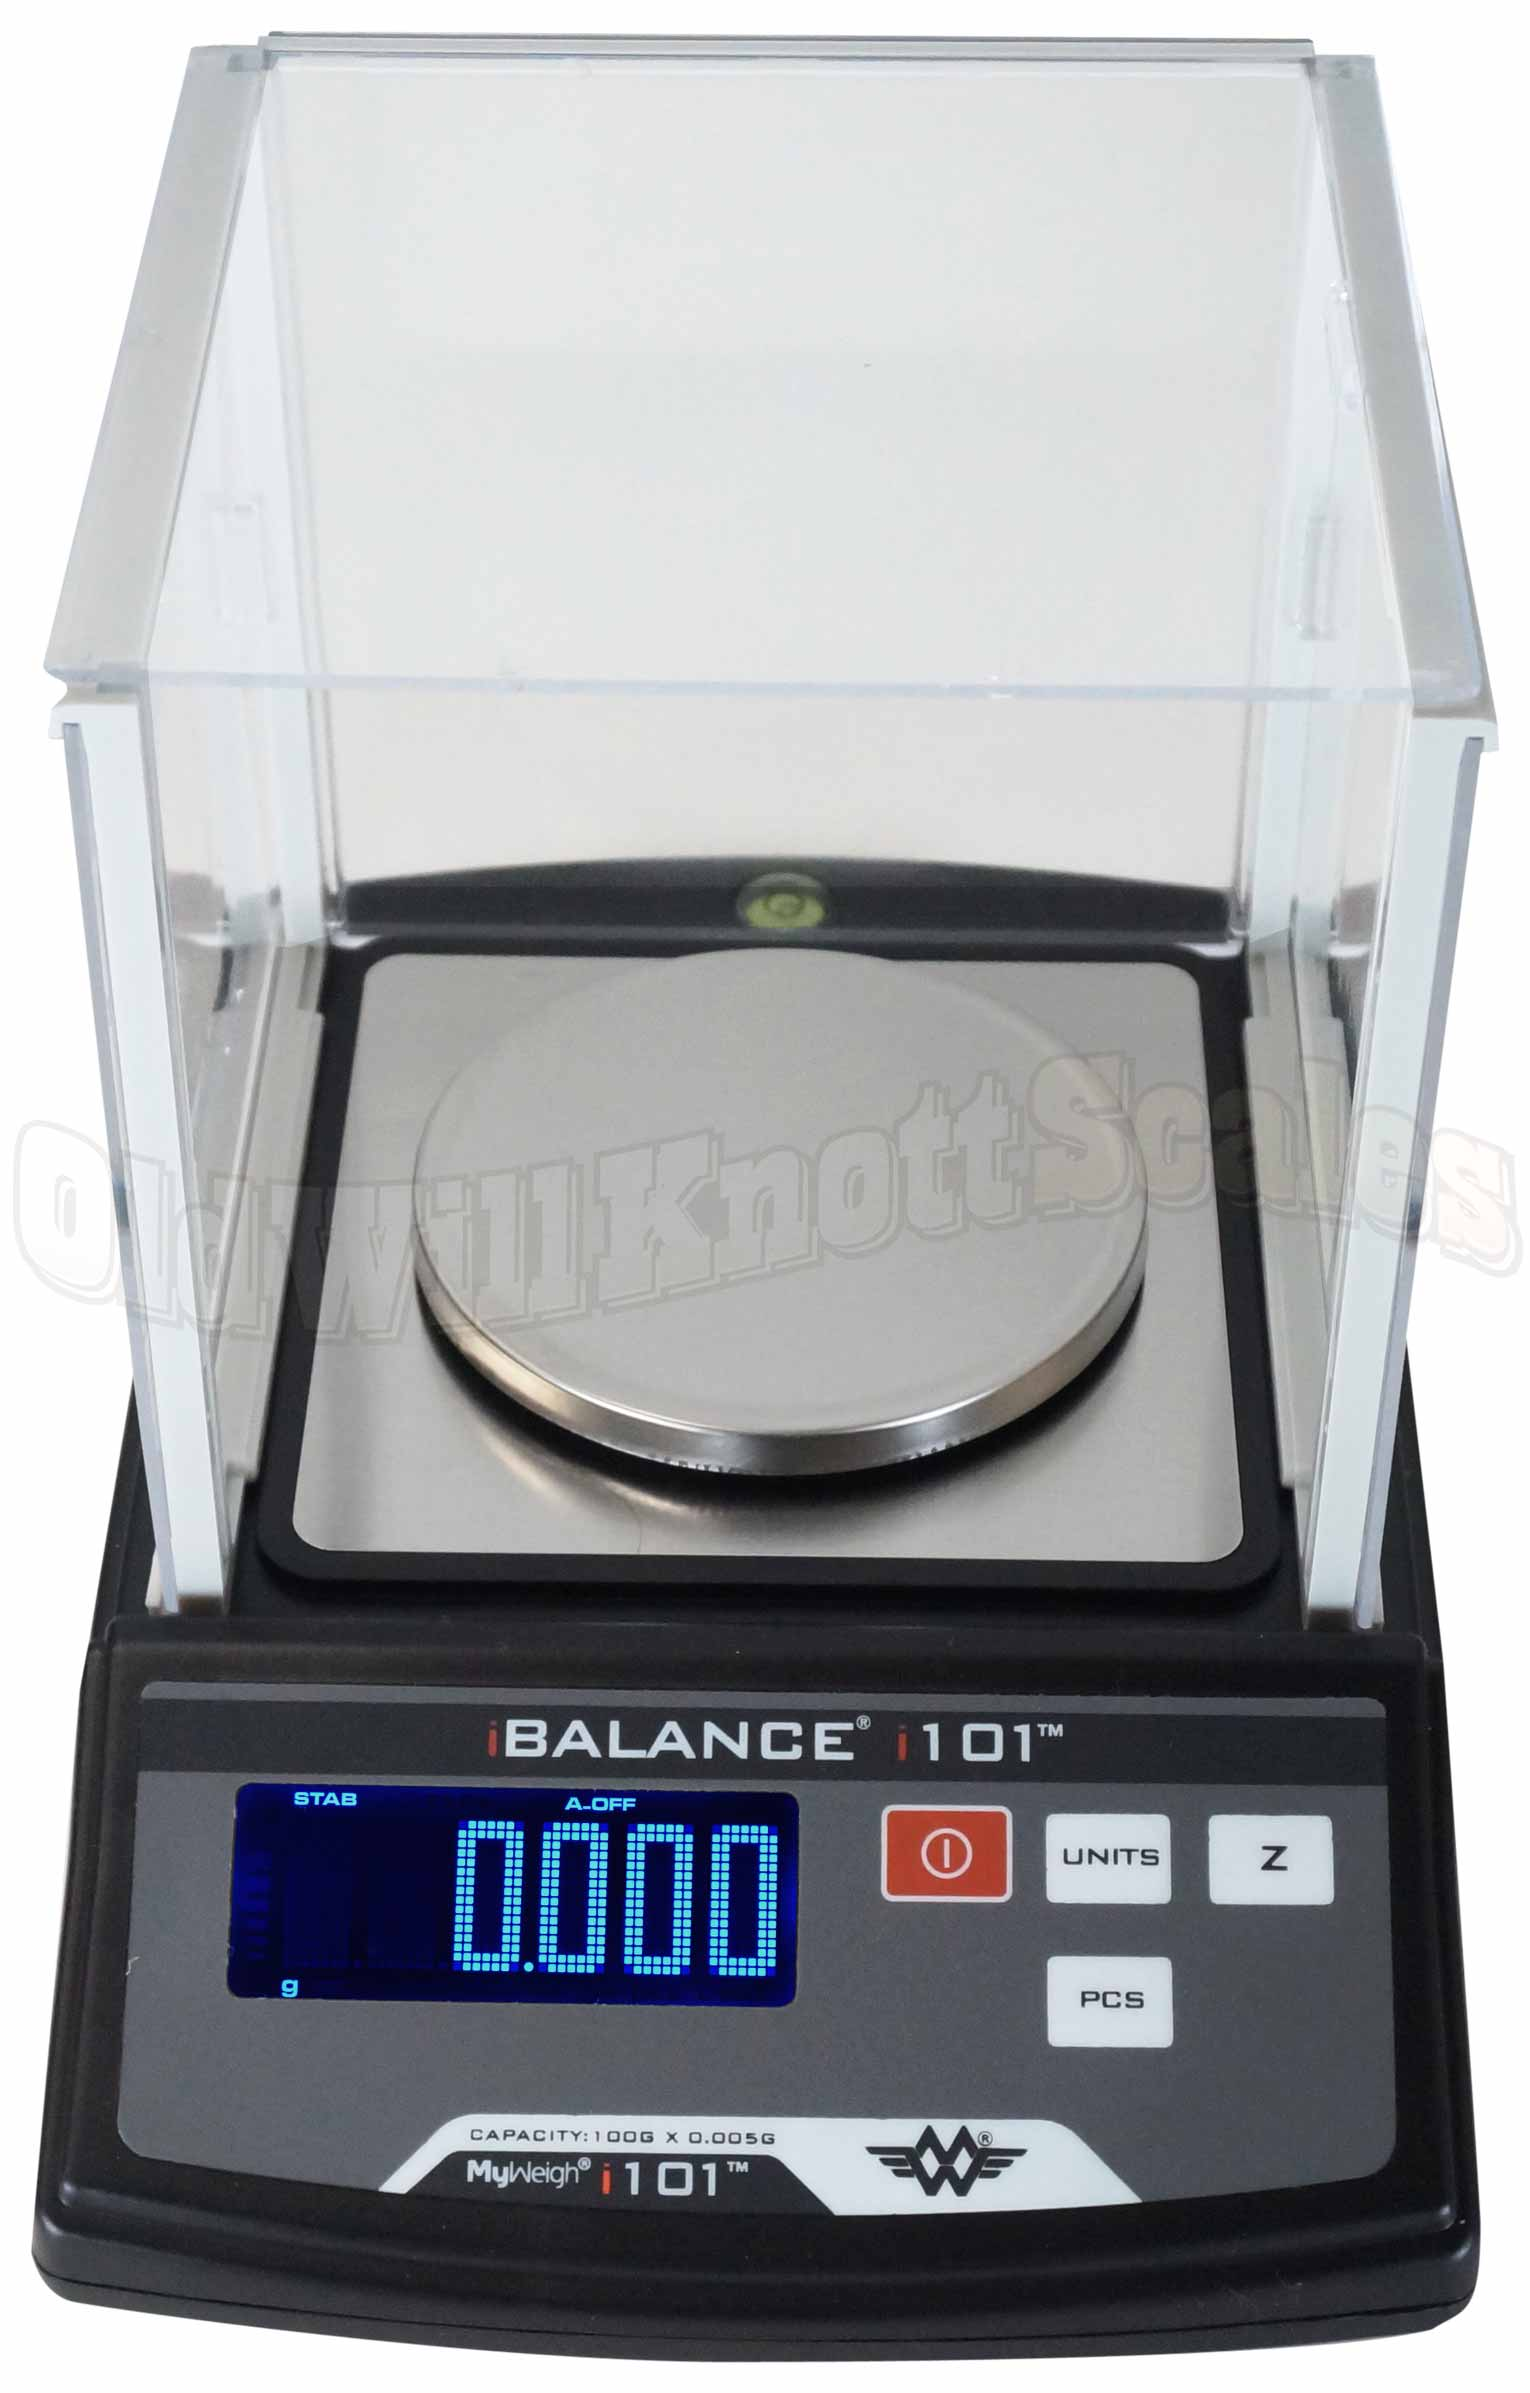 My Weigh - iBalance i101 - Top View